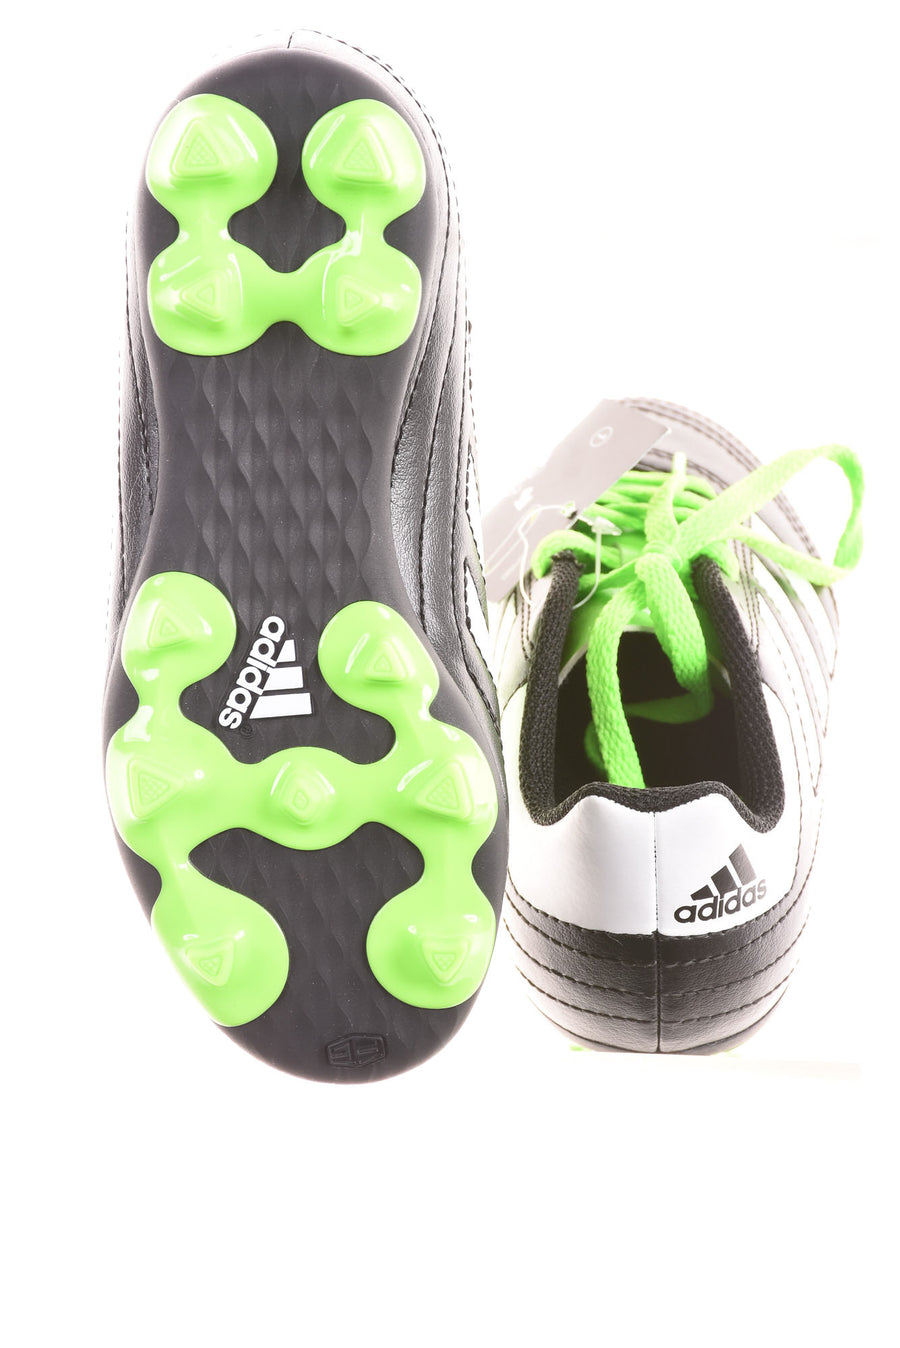 USED Adidas Boy's Cleats 11 Green & Black